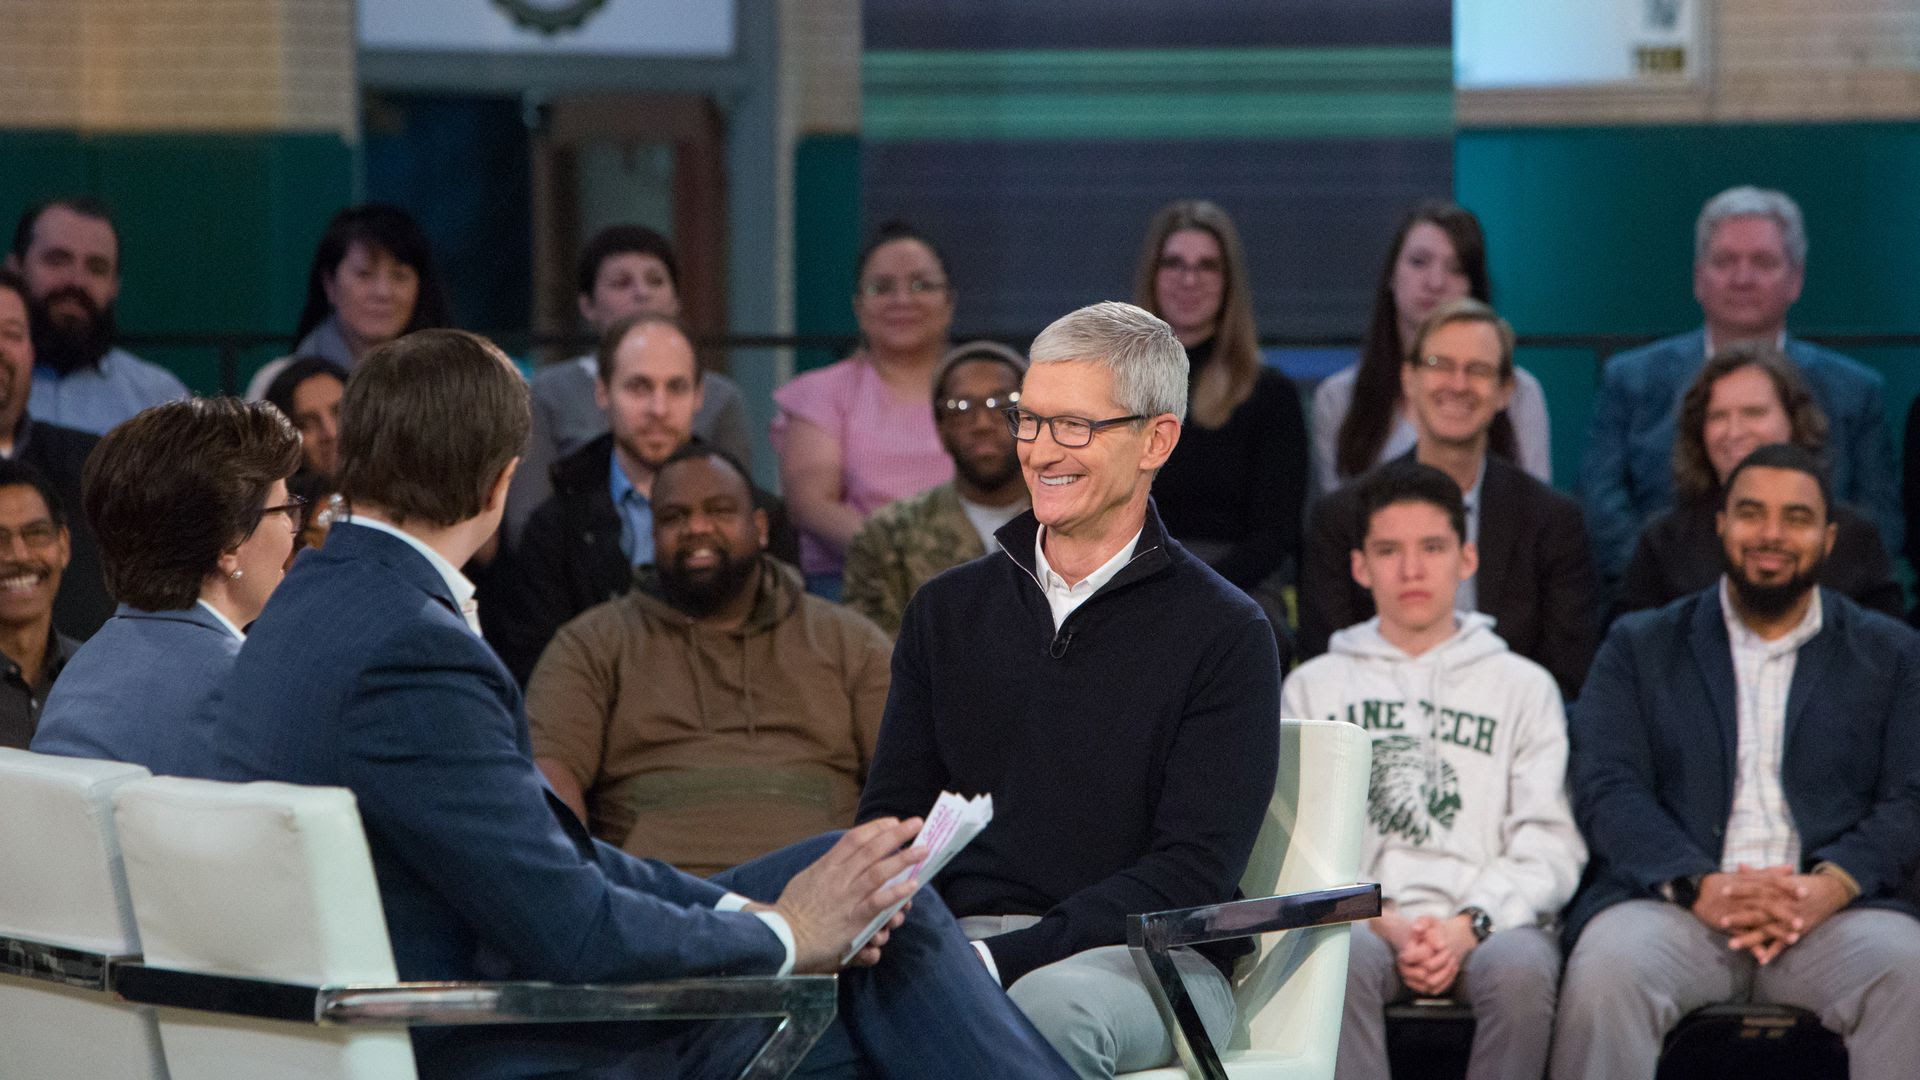 Tim Cook talking with Kara Swisher and Chris Hayes